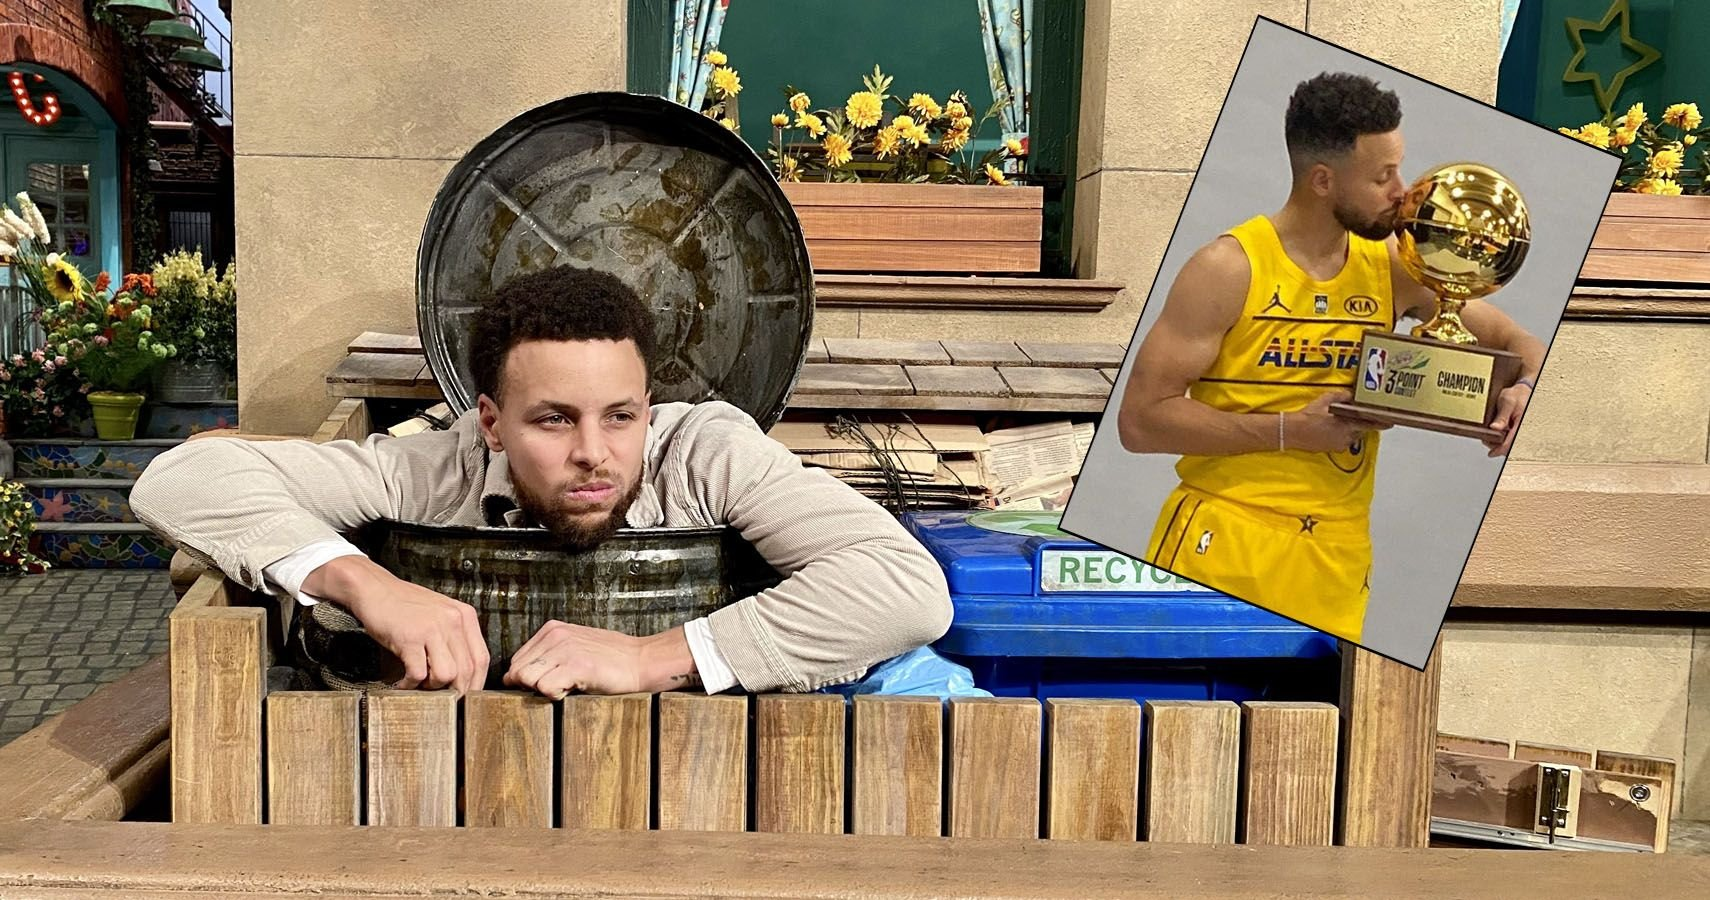 Steph Curry: Behind Basketball's Highest Paid Superstar